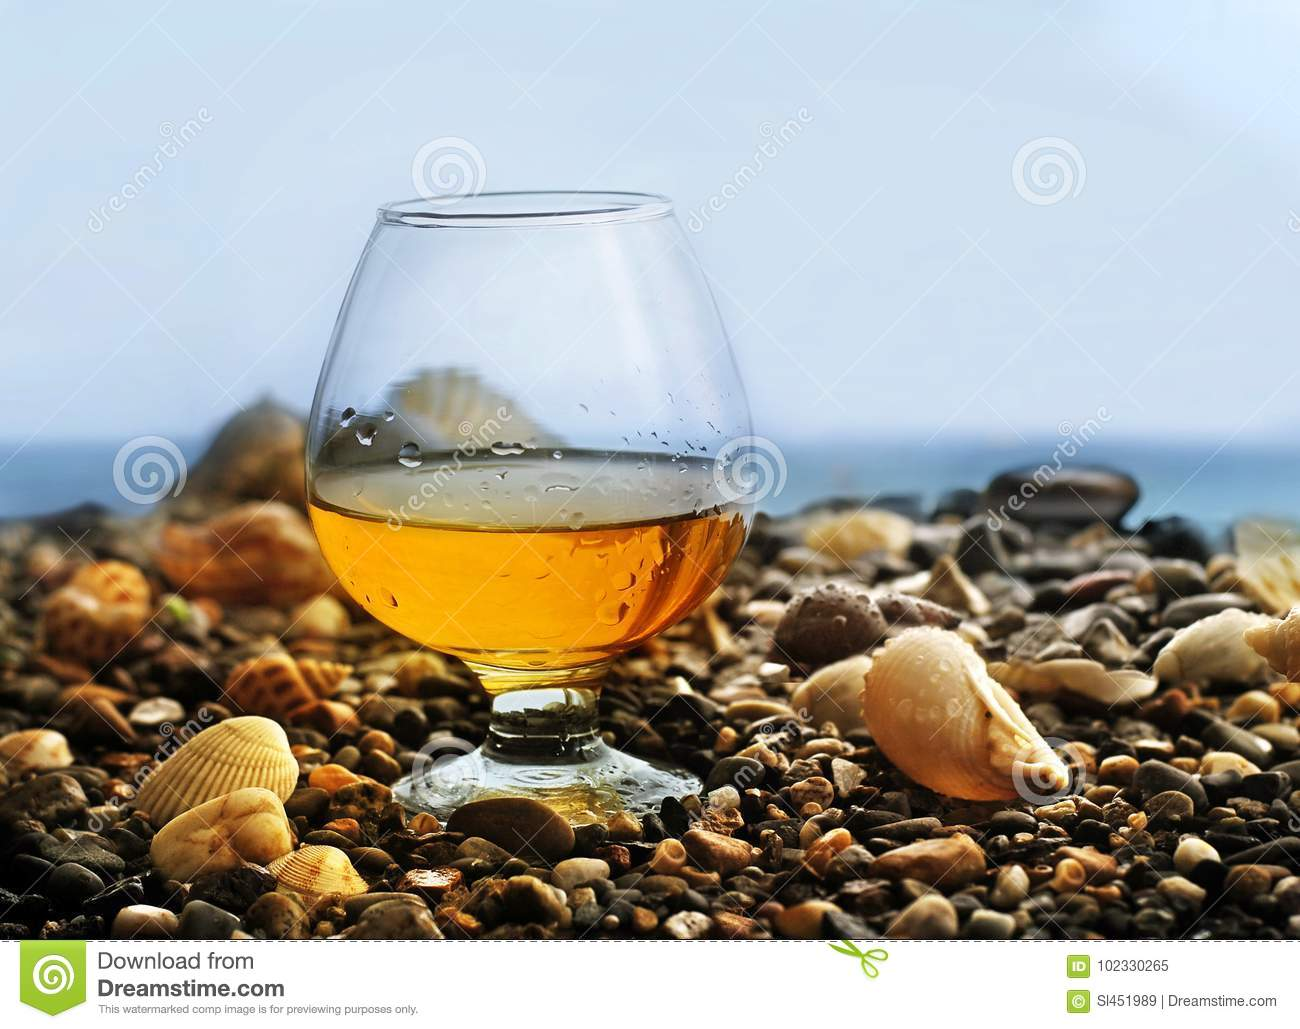 A glass of wine on the stones on the beach